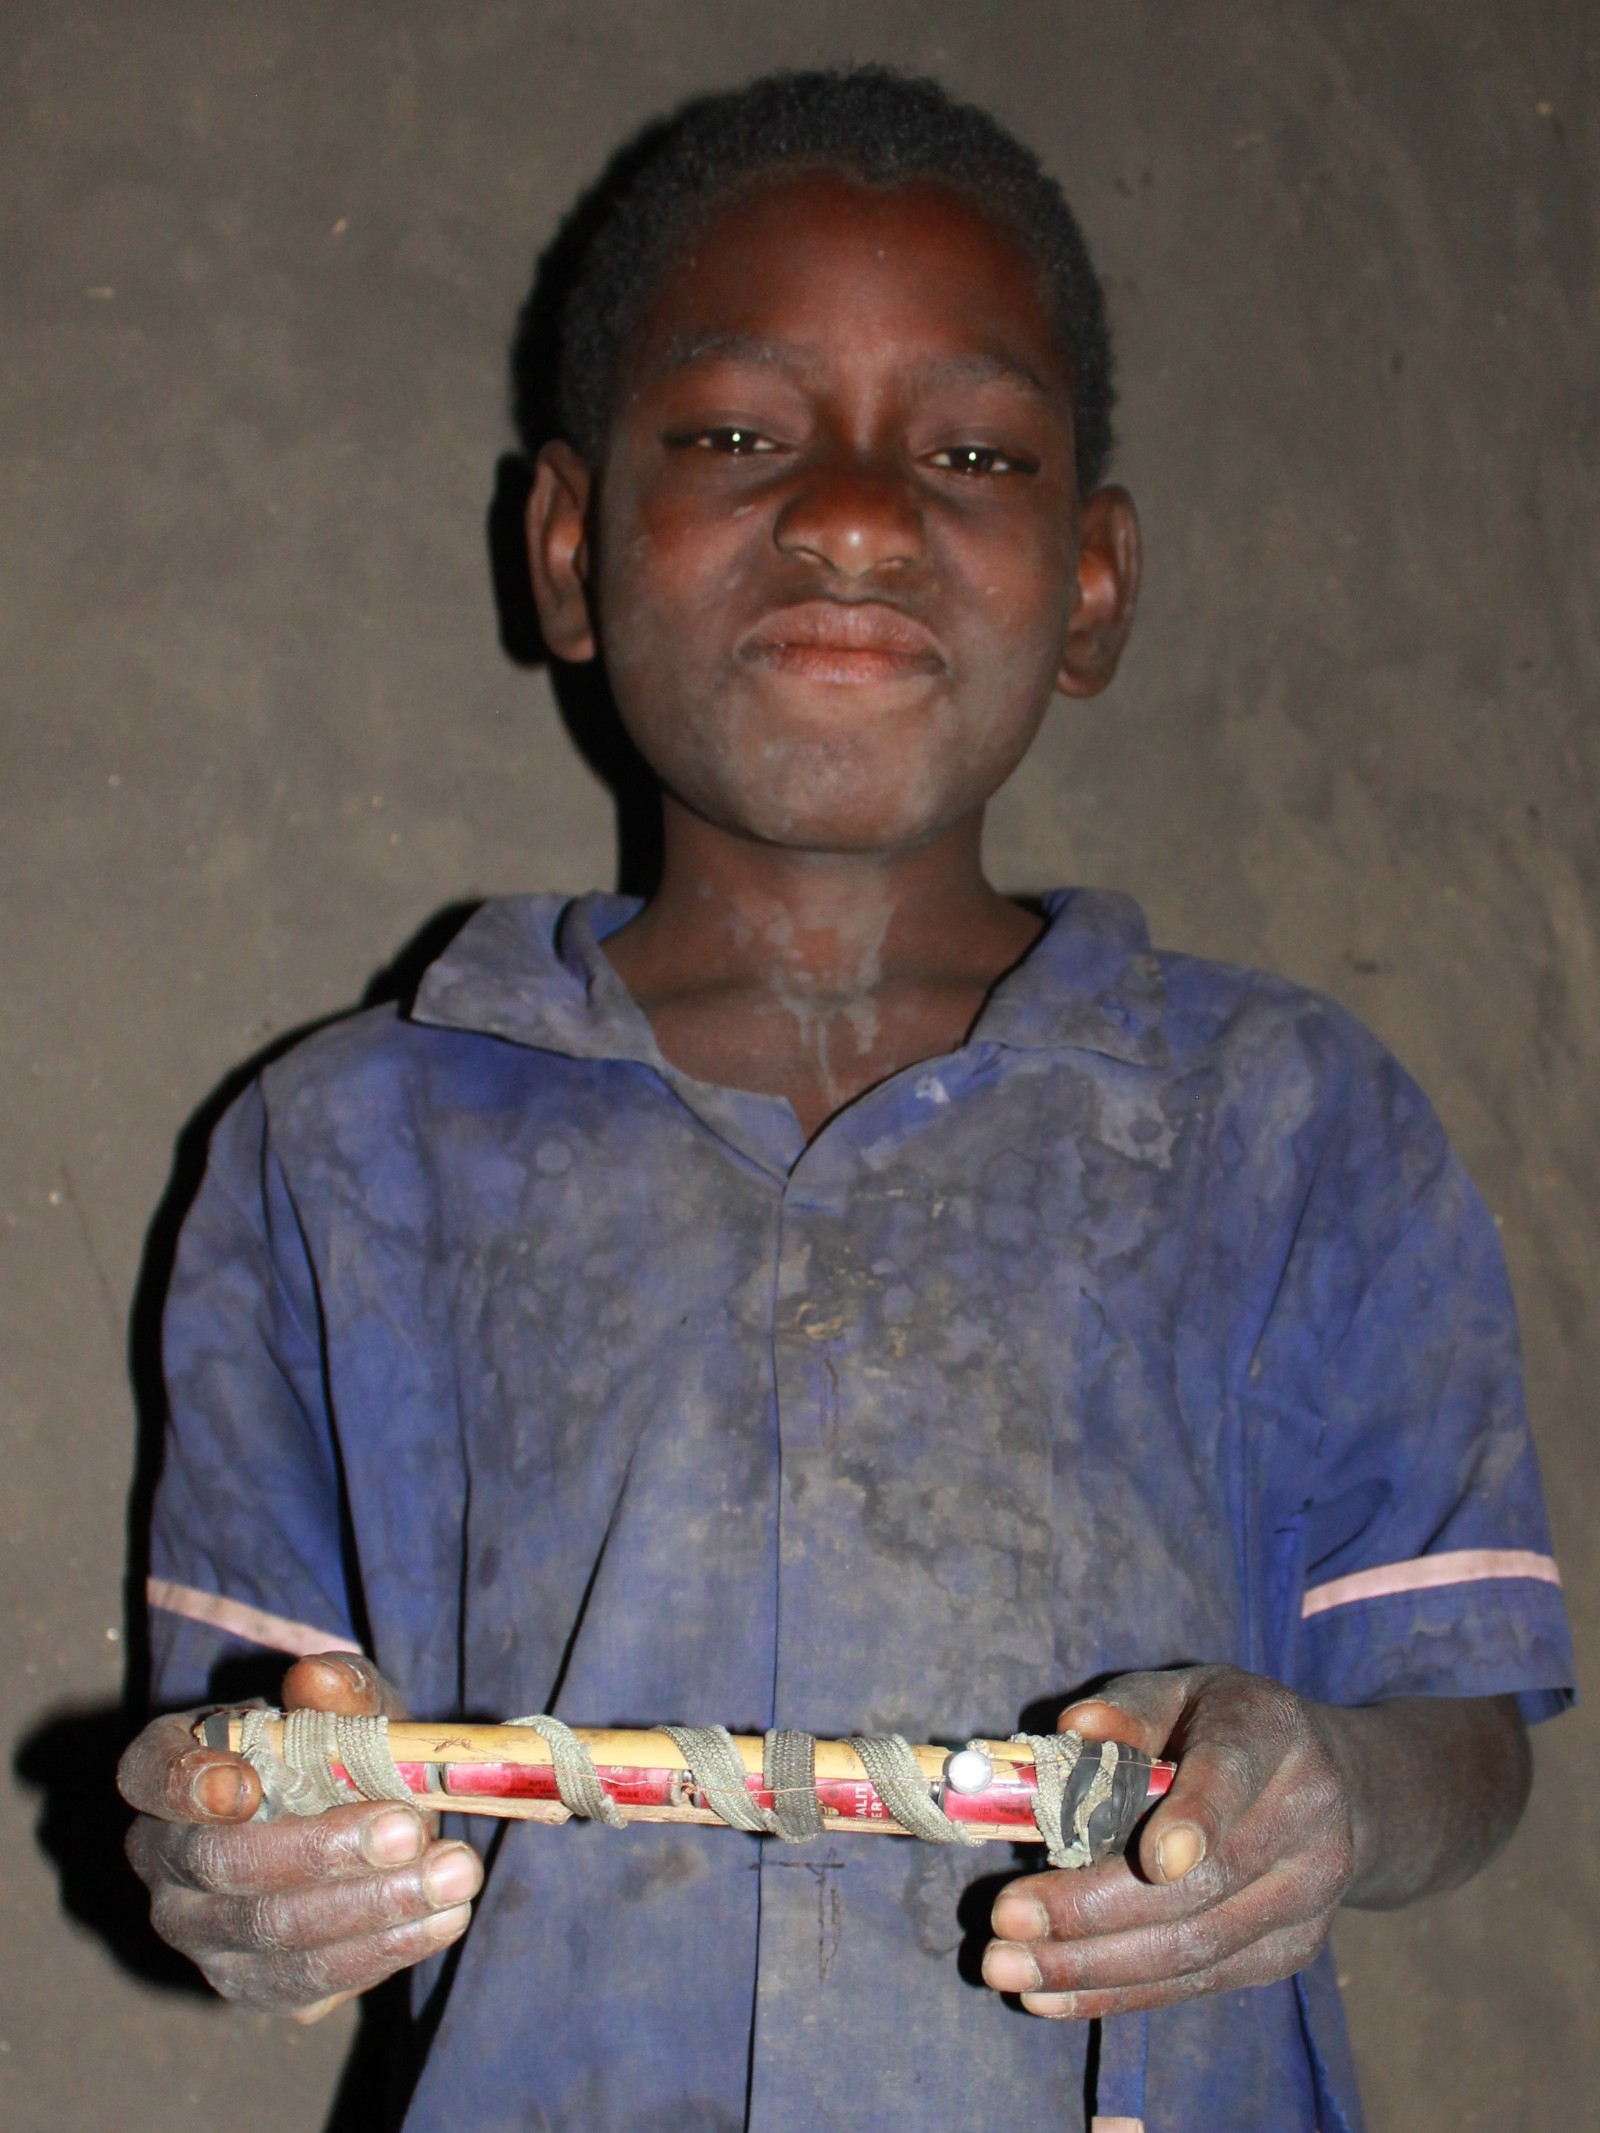 George is 9 years old. He has made a 'stick torch' which is used as the only source of lighting in his home in Malawi. It gives off less light than a candle. It's made of four batteries (three are dead ones he picked up off the ground in his village, which still have a voltage), an LED, a wire and some bark—all bound together with a shoe lace and strips of bicycle rubber. Credit: SolarAid